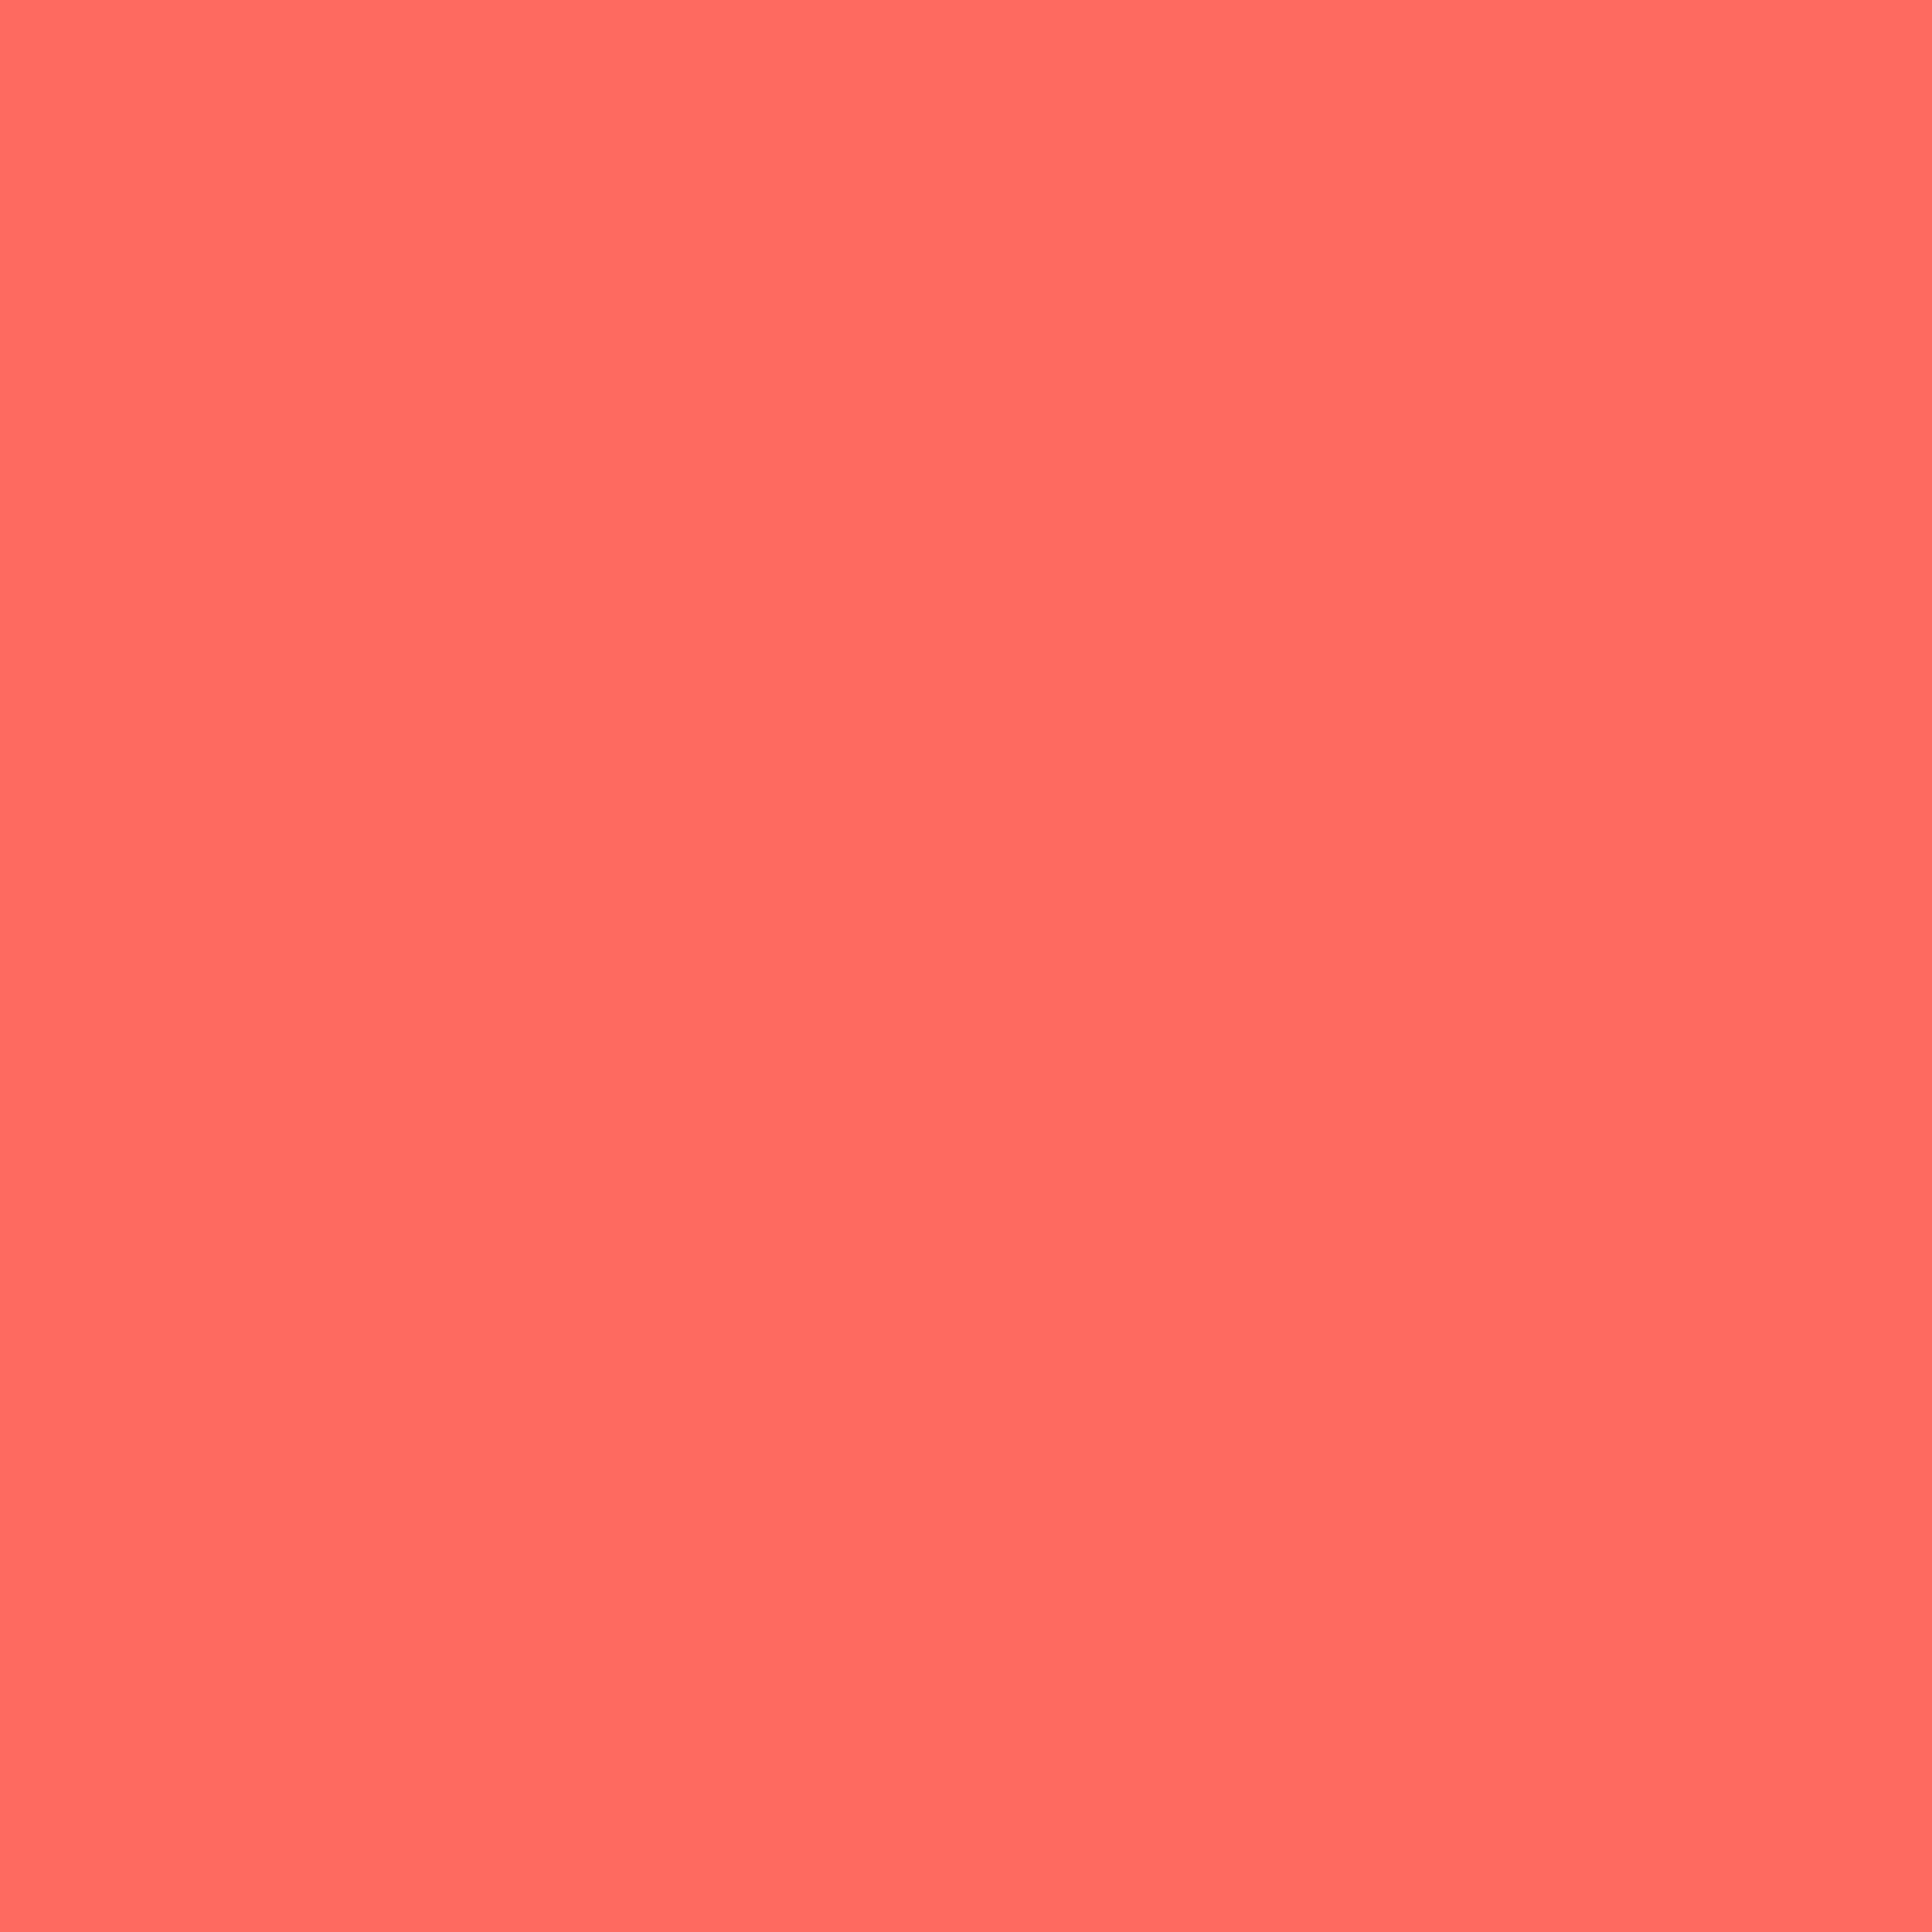 2048x2048 Pastel Red Solid Color Background